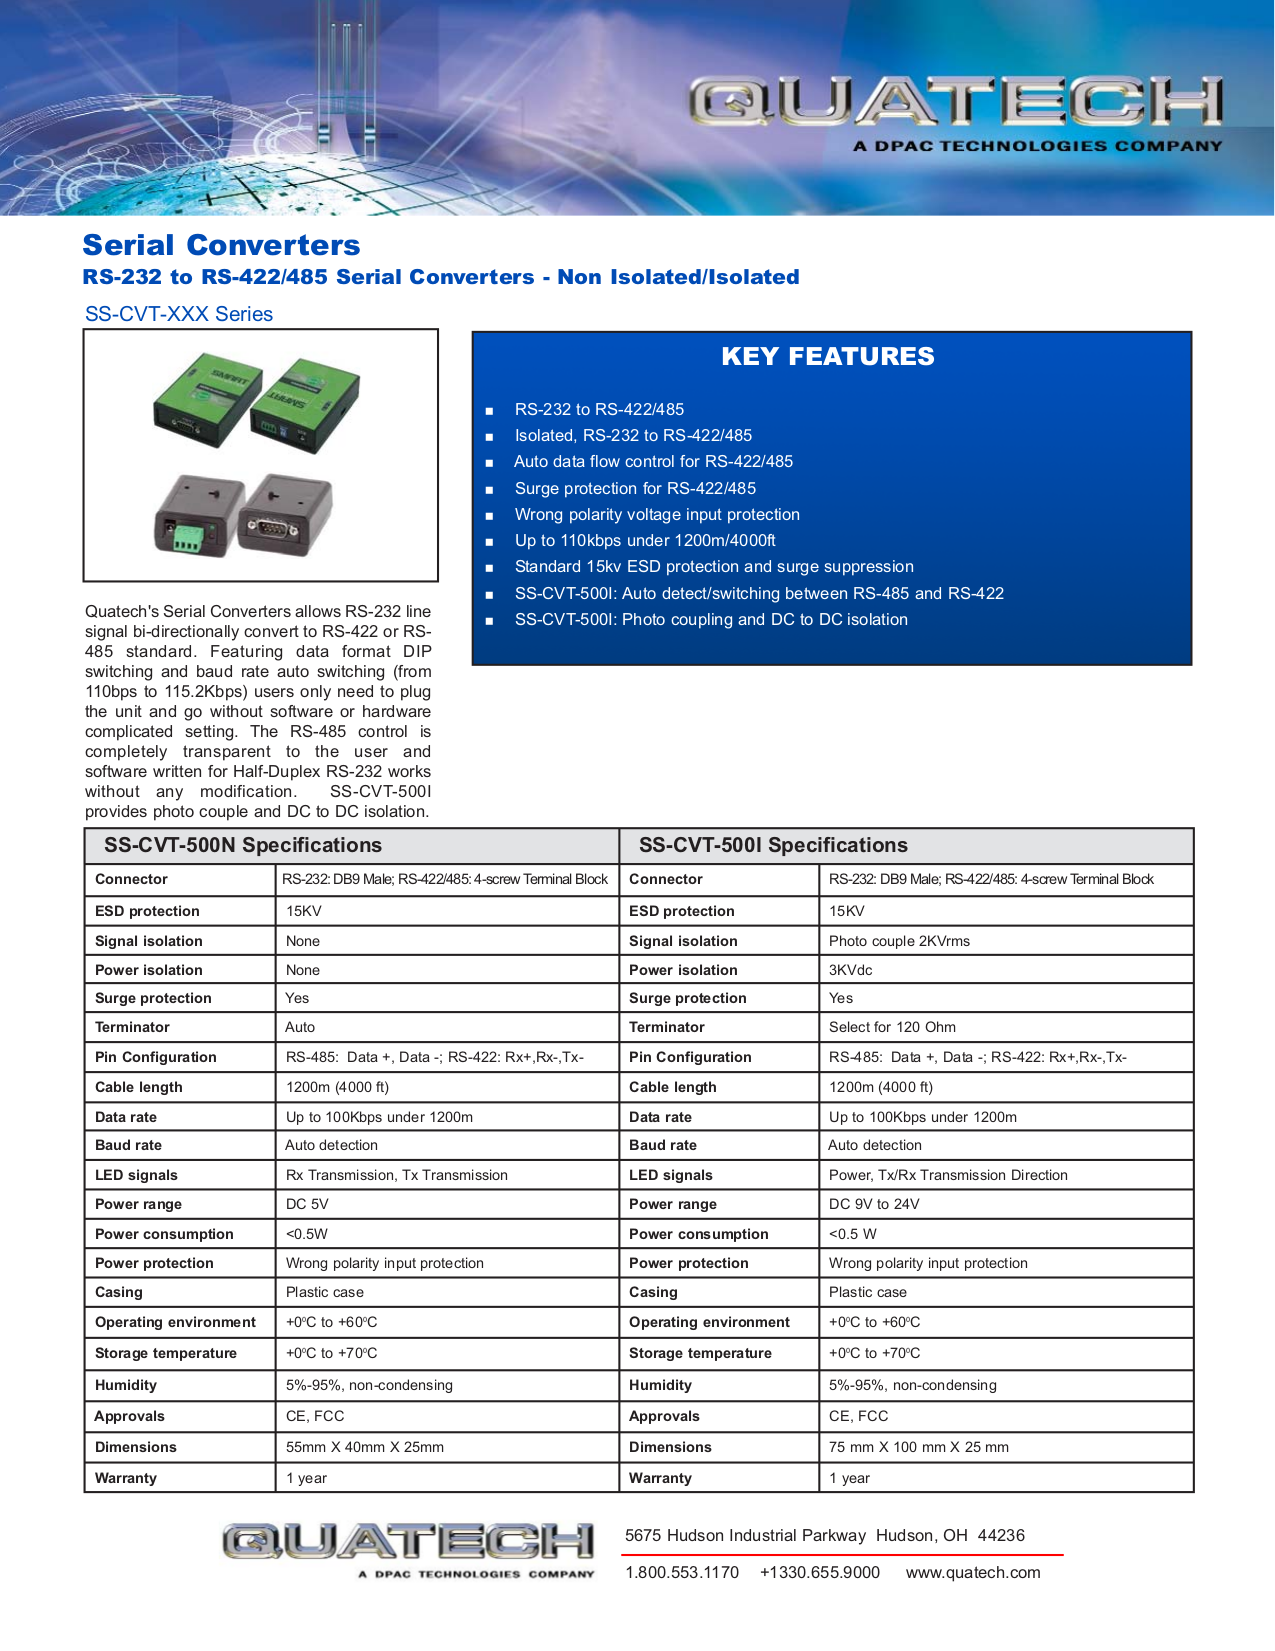 pdf for Quatech Other SS-CVT-500N Serial Converters manual